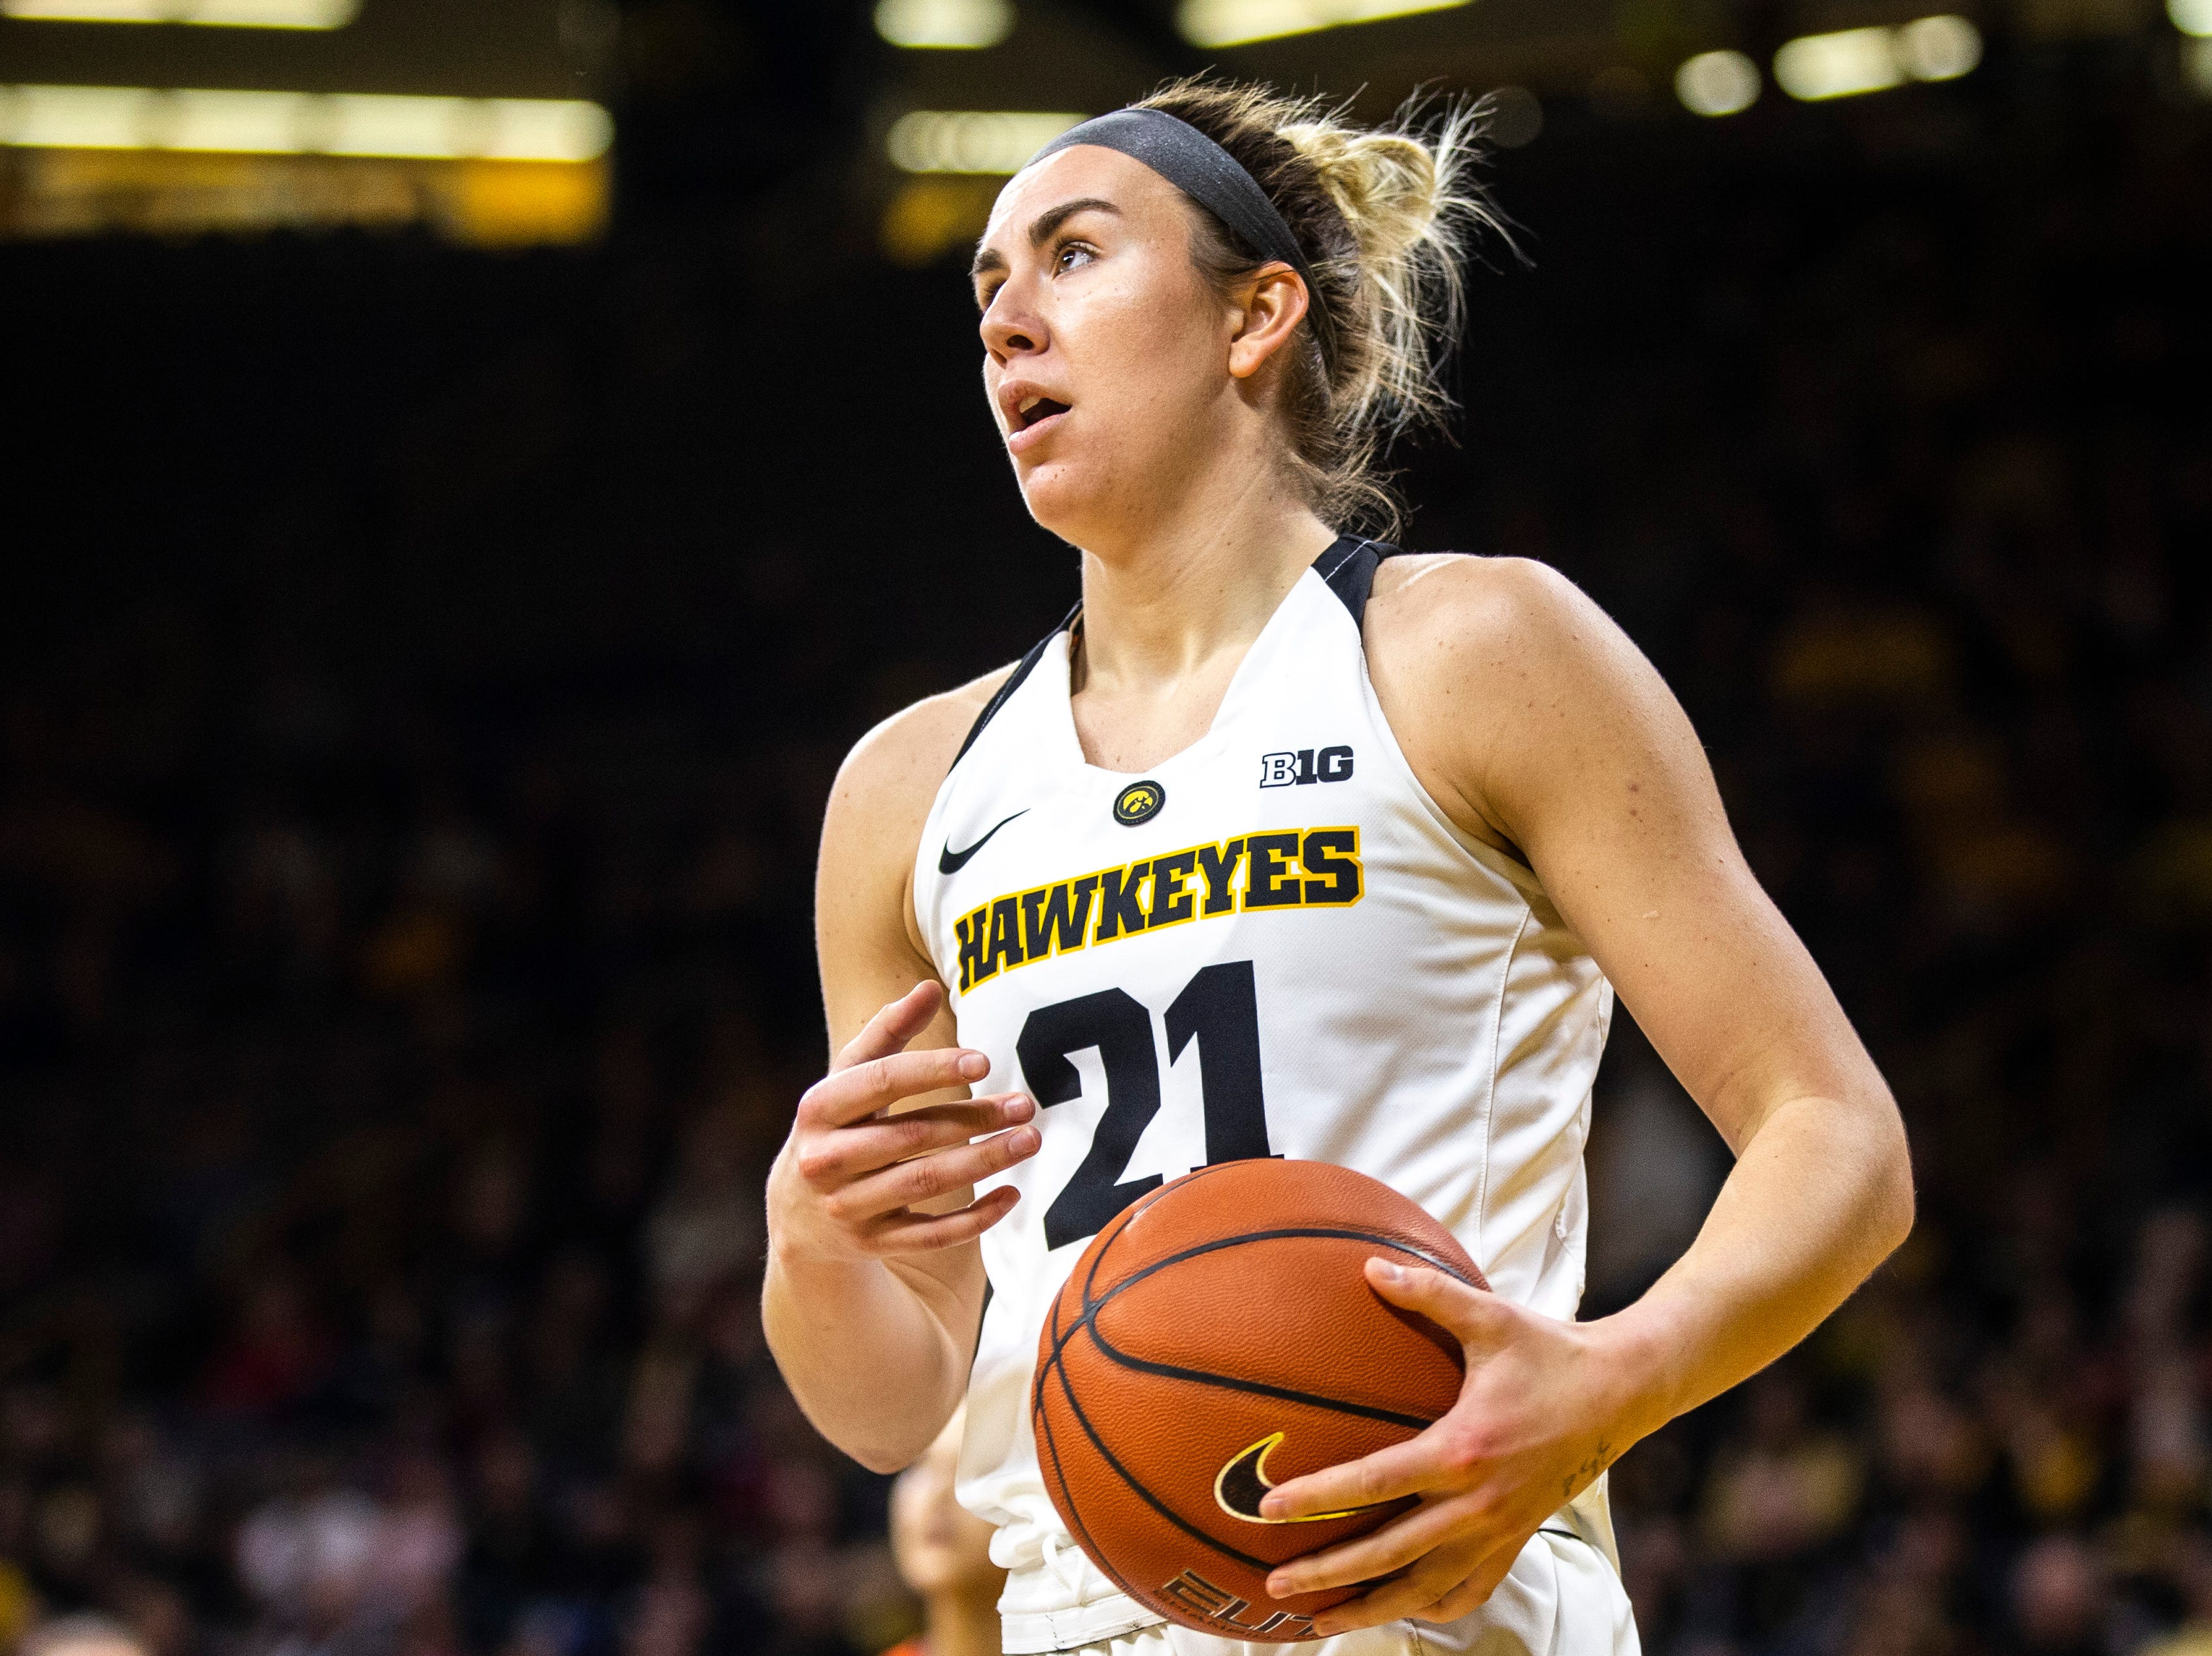 Iowa forward Hannah Stewart (21) reacts after getting fouled during a NCAA Big Ten Conference women's basketball game on Thursday, Feb. 14, 2019 at Carver-Hawkeye Arena in Iowa City, Iowa.